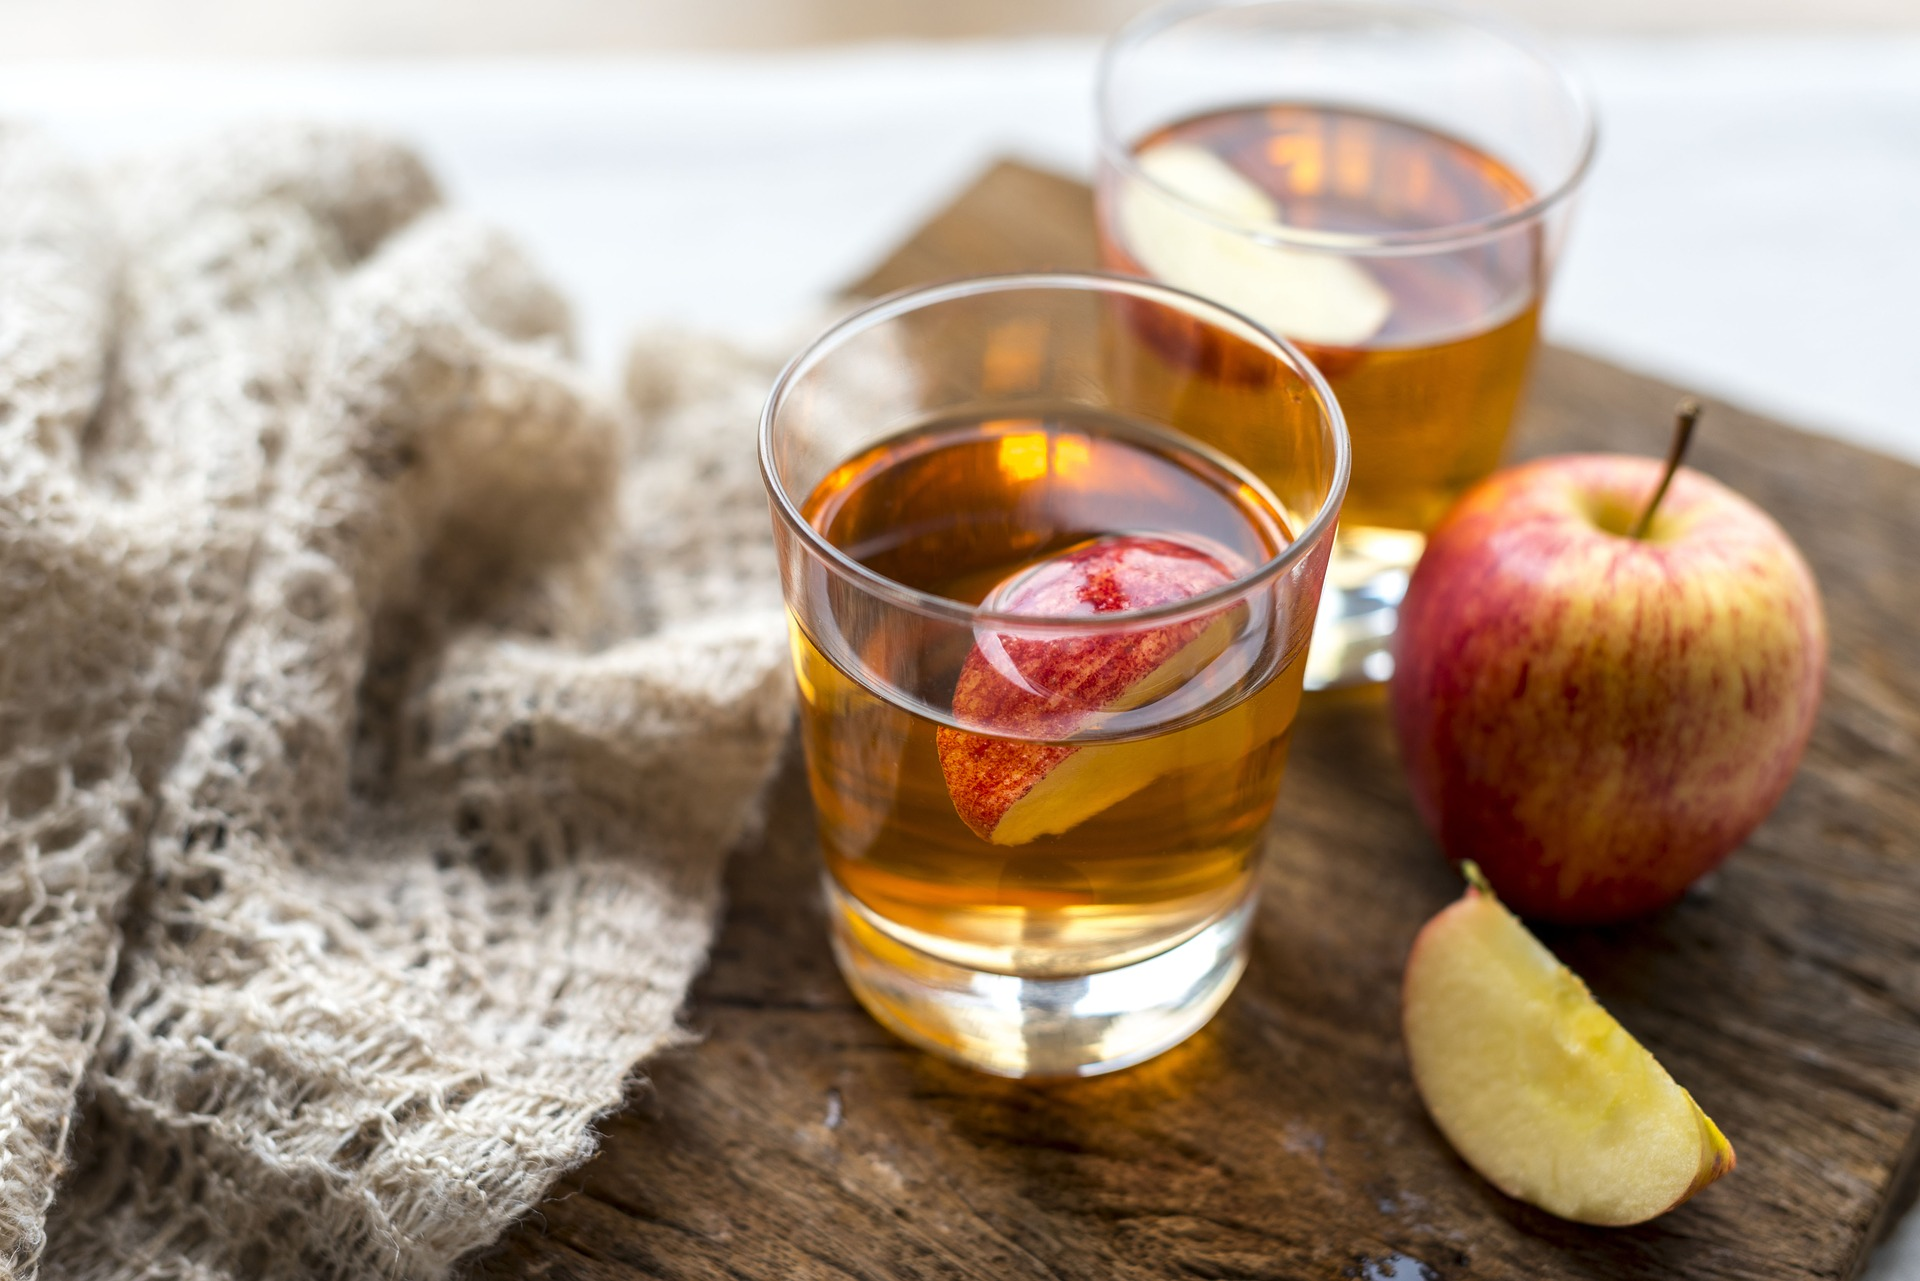 Is Kombucha Healthy: Why I Quit Drinking It